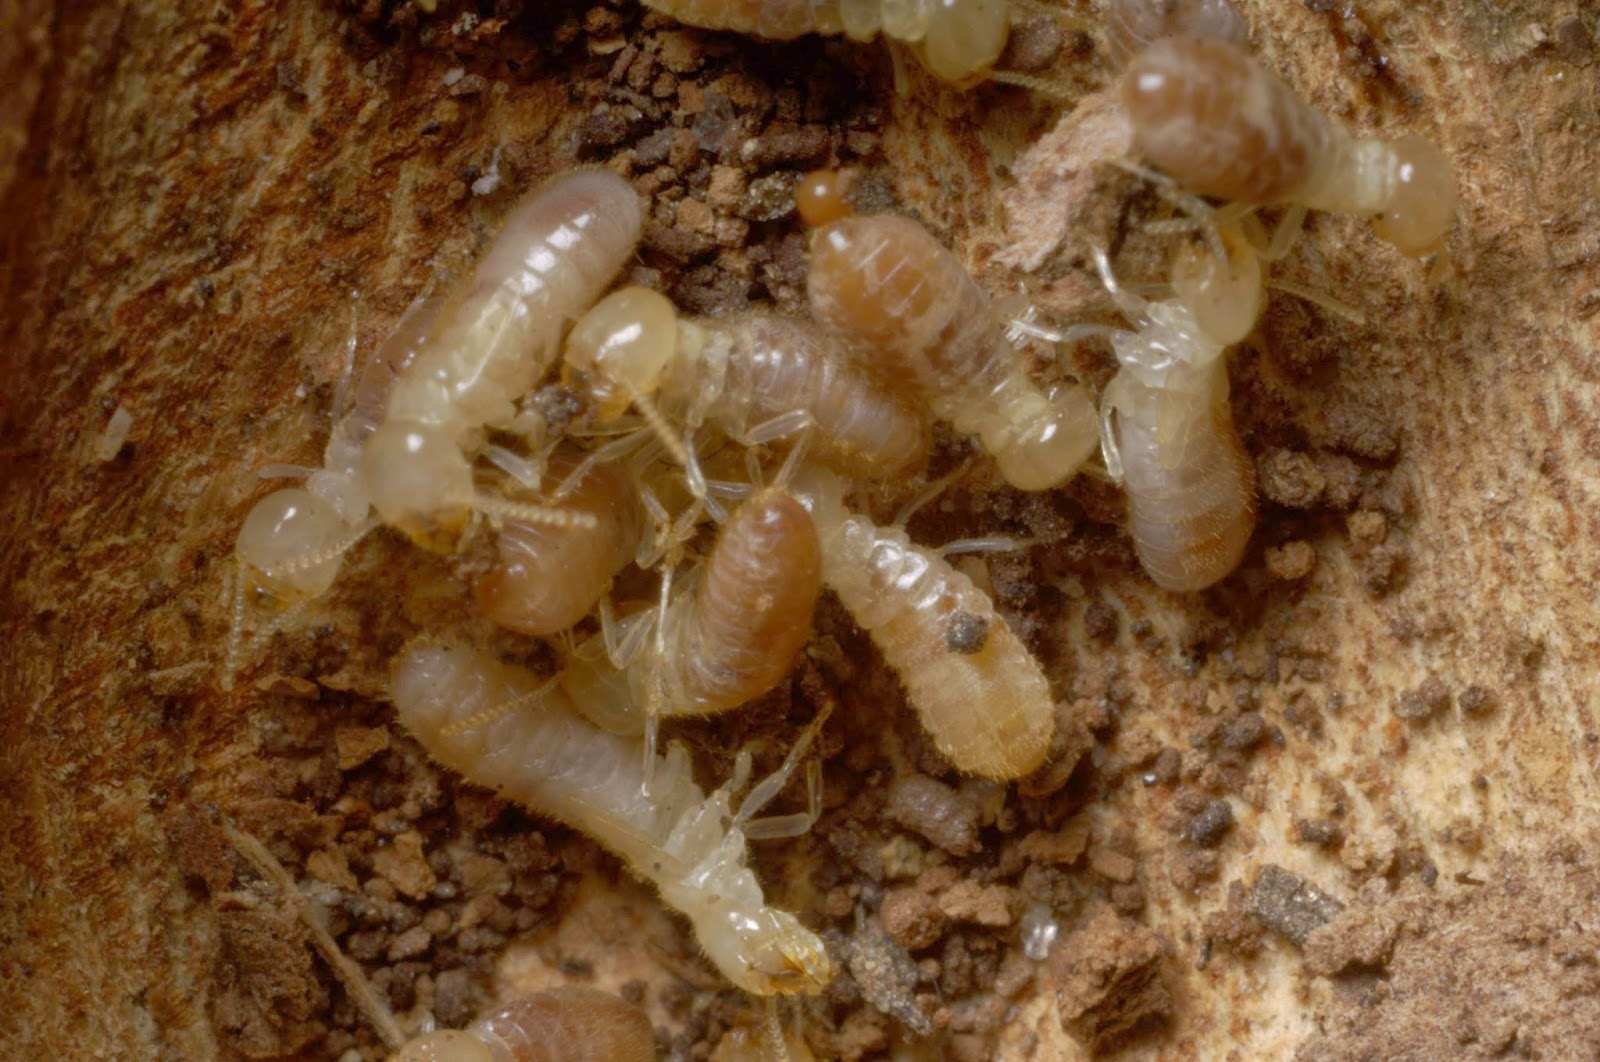 how to take care of termites